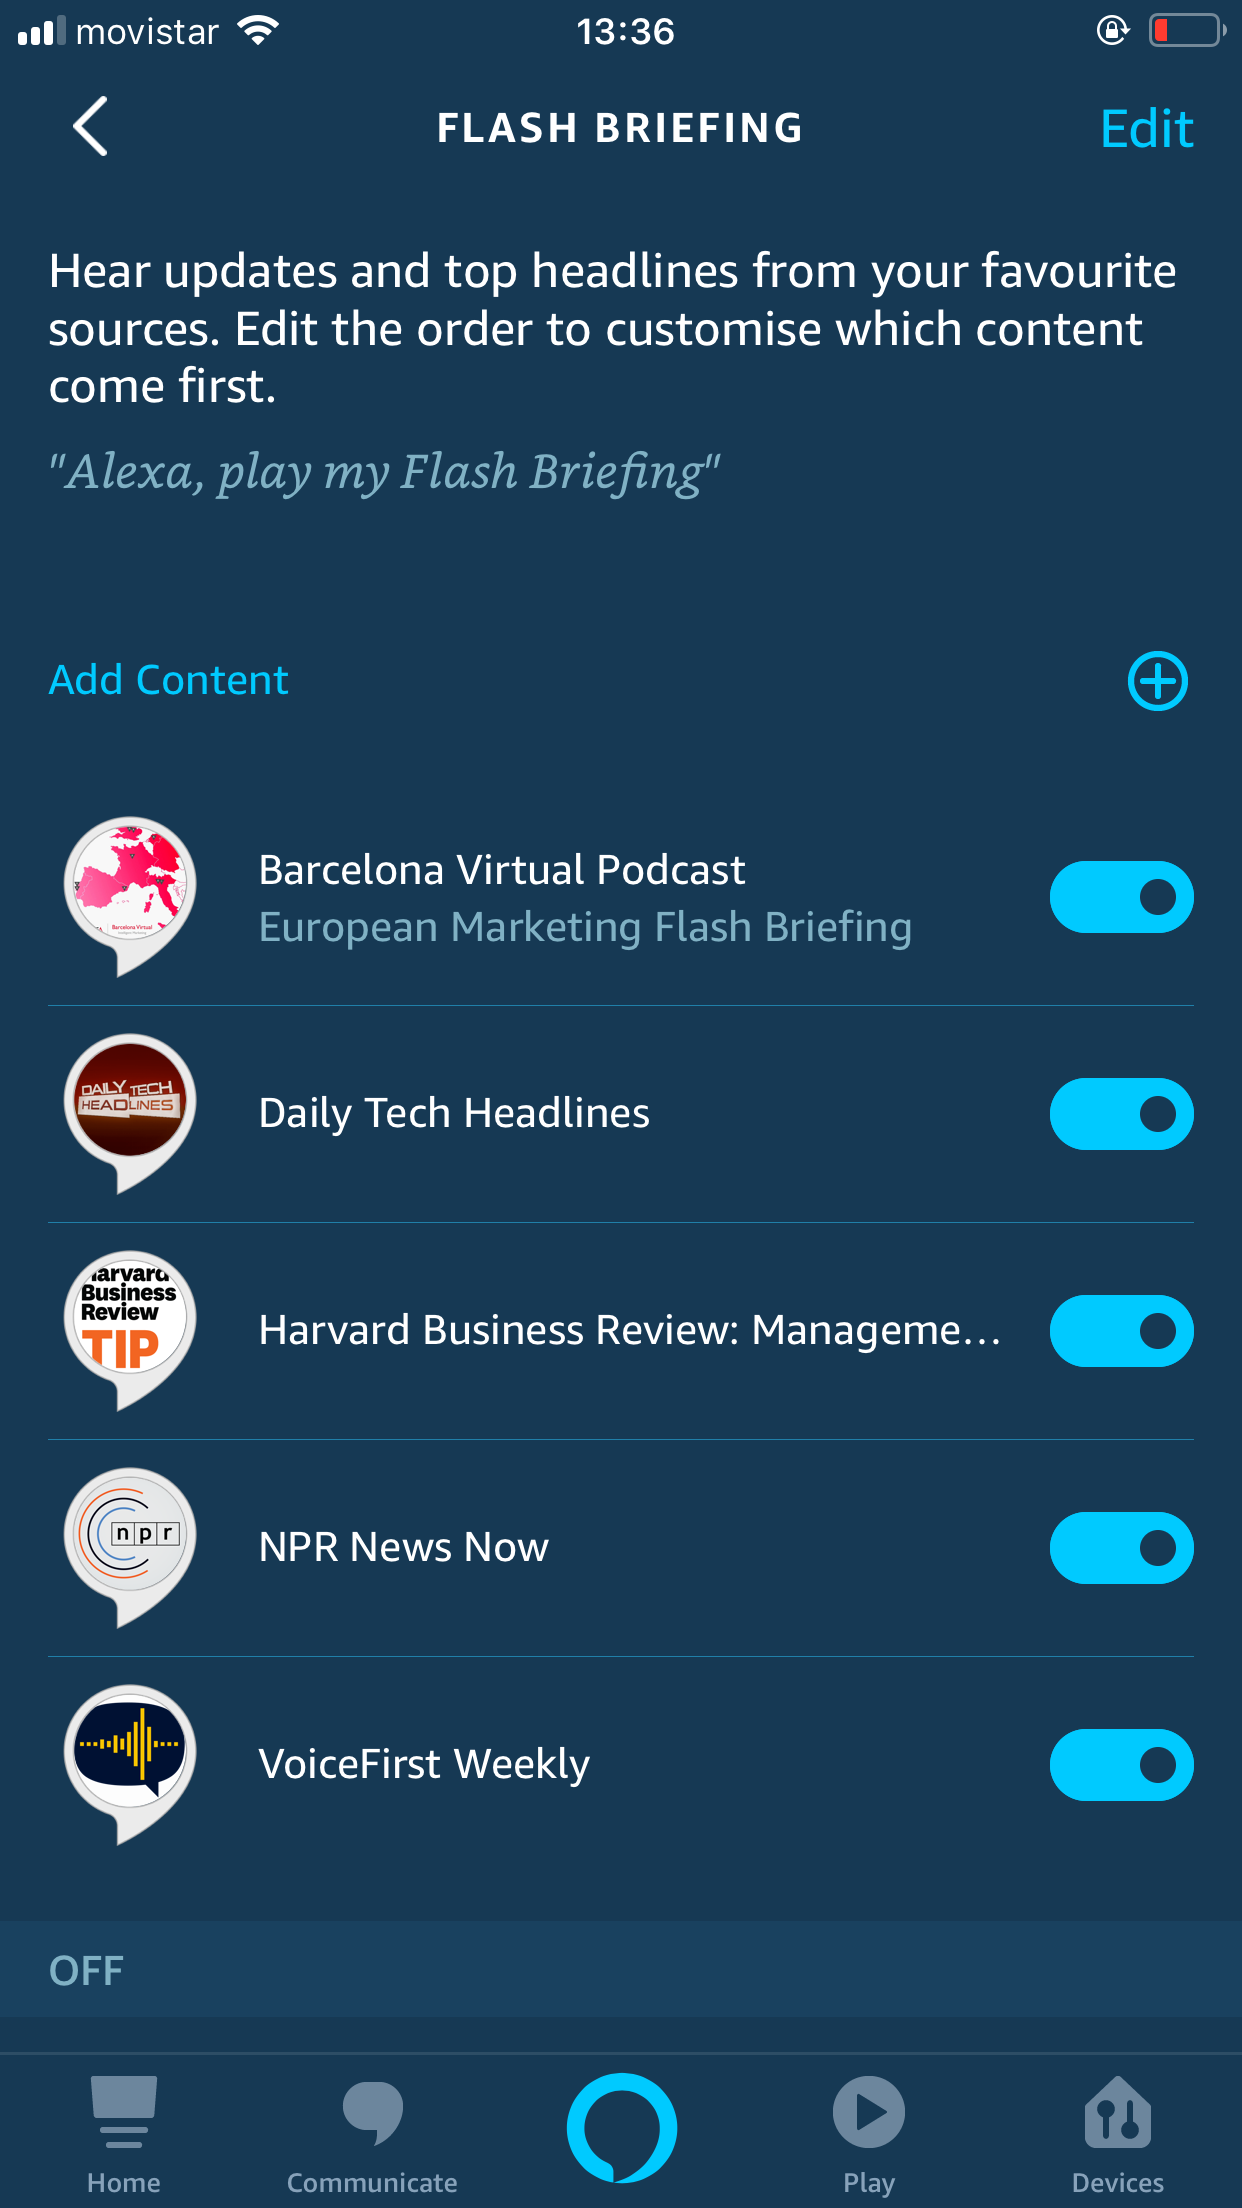 Screenshot from the Amazon Alexa mobile app